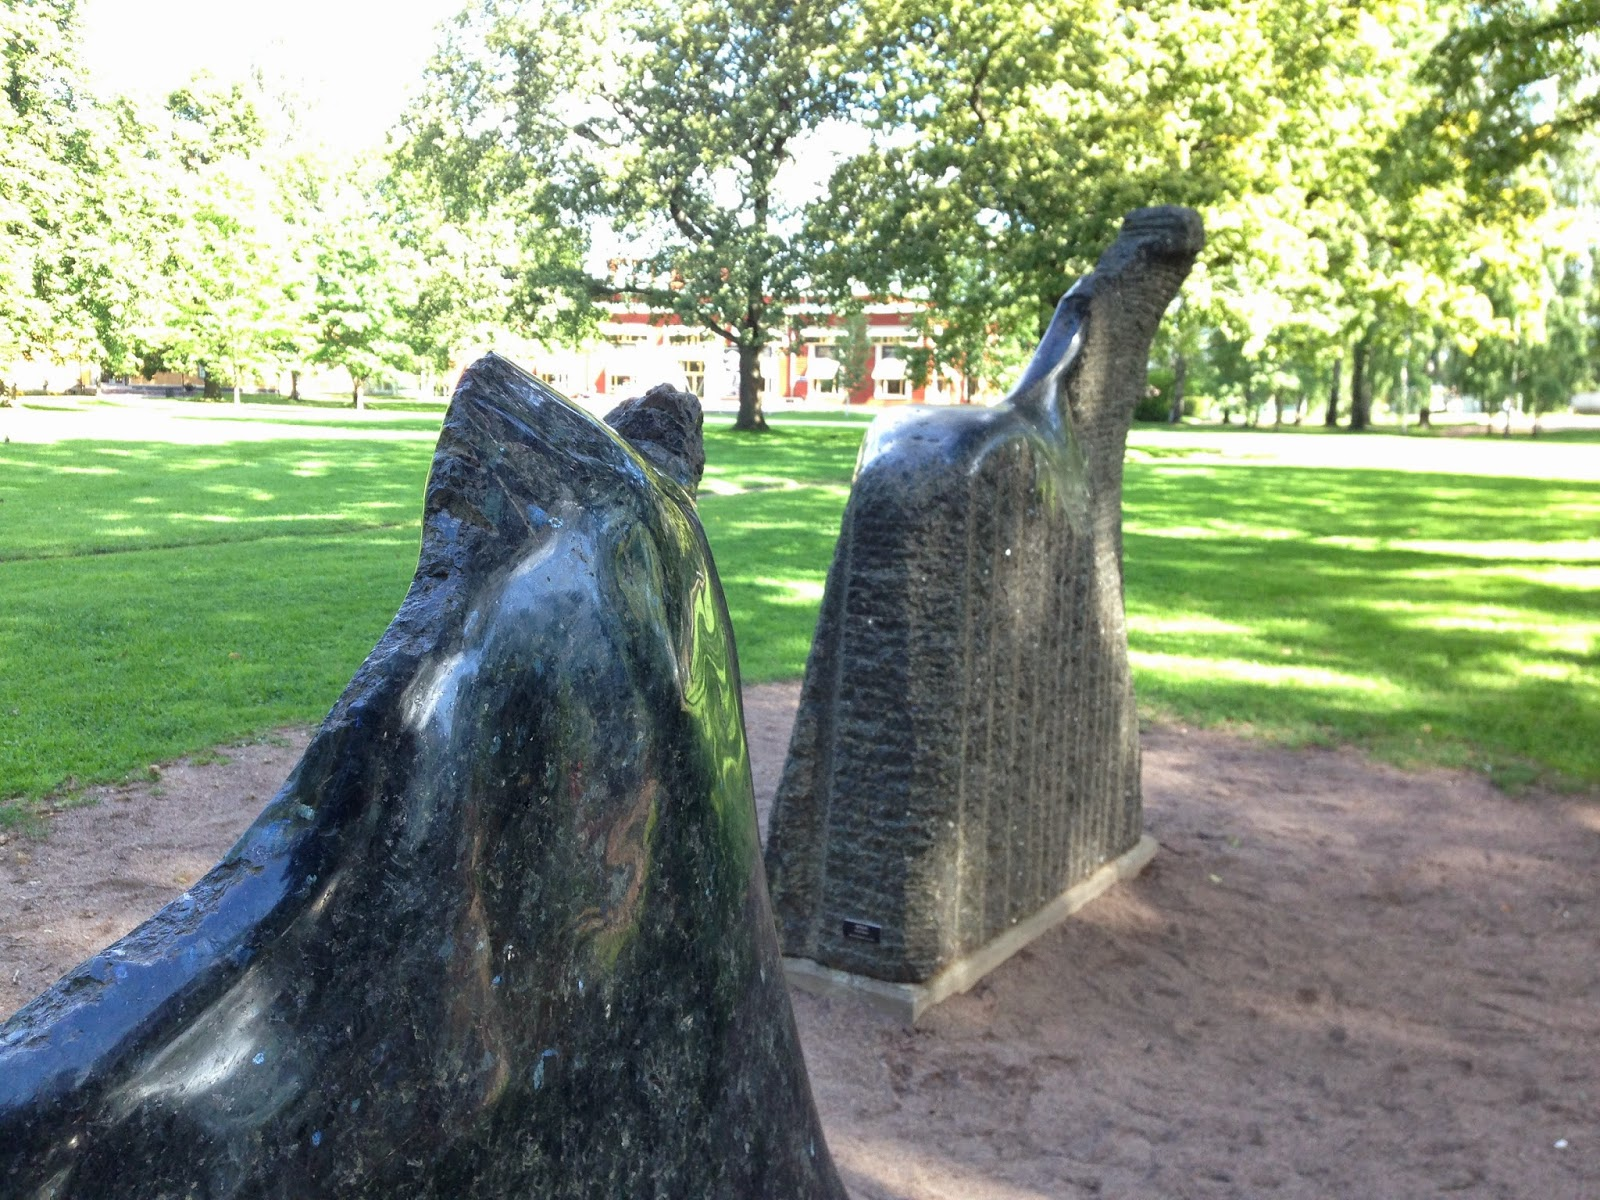 Horse sculptures in the park at Karlstad